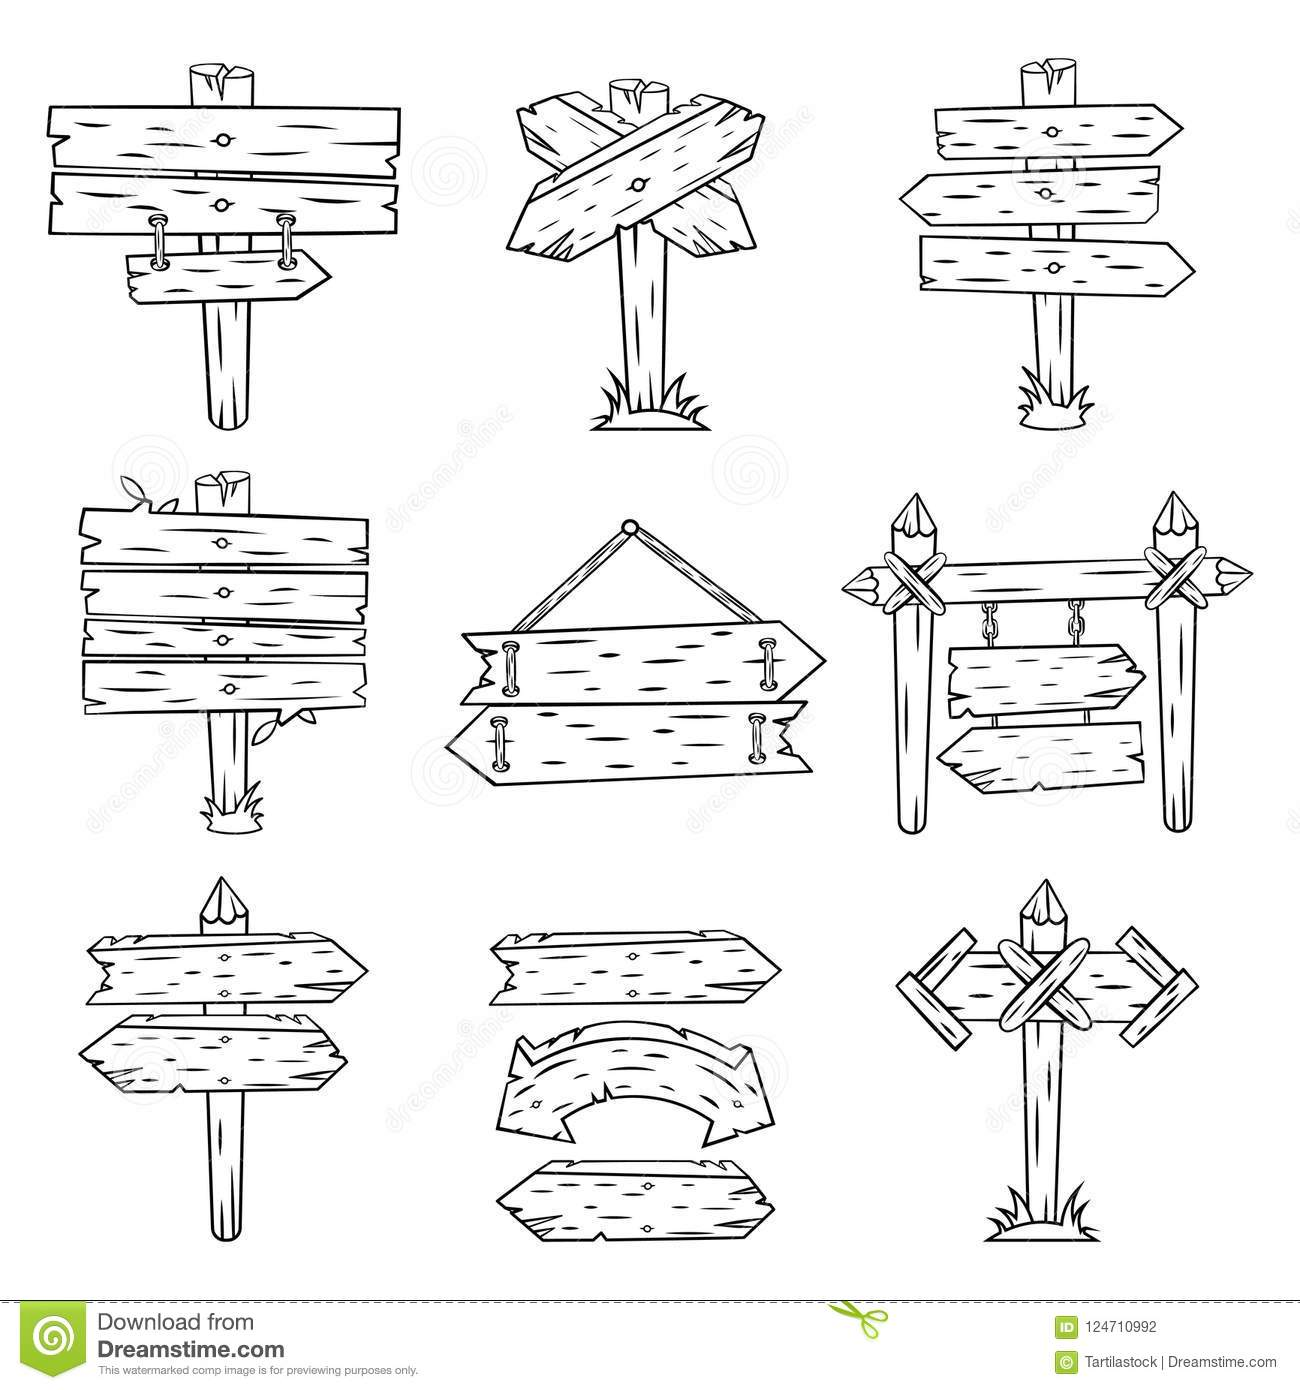 Doodle Wood Signs Hand Drawn Wooden Signpost And Arrows Sketch